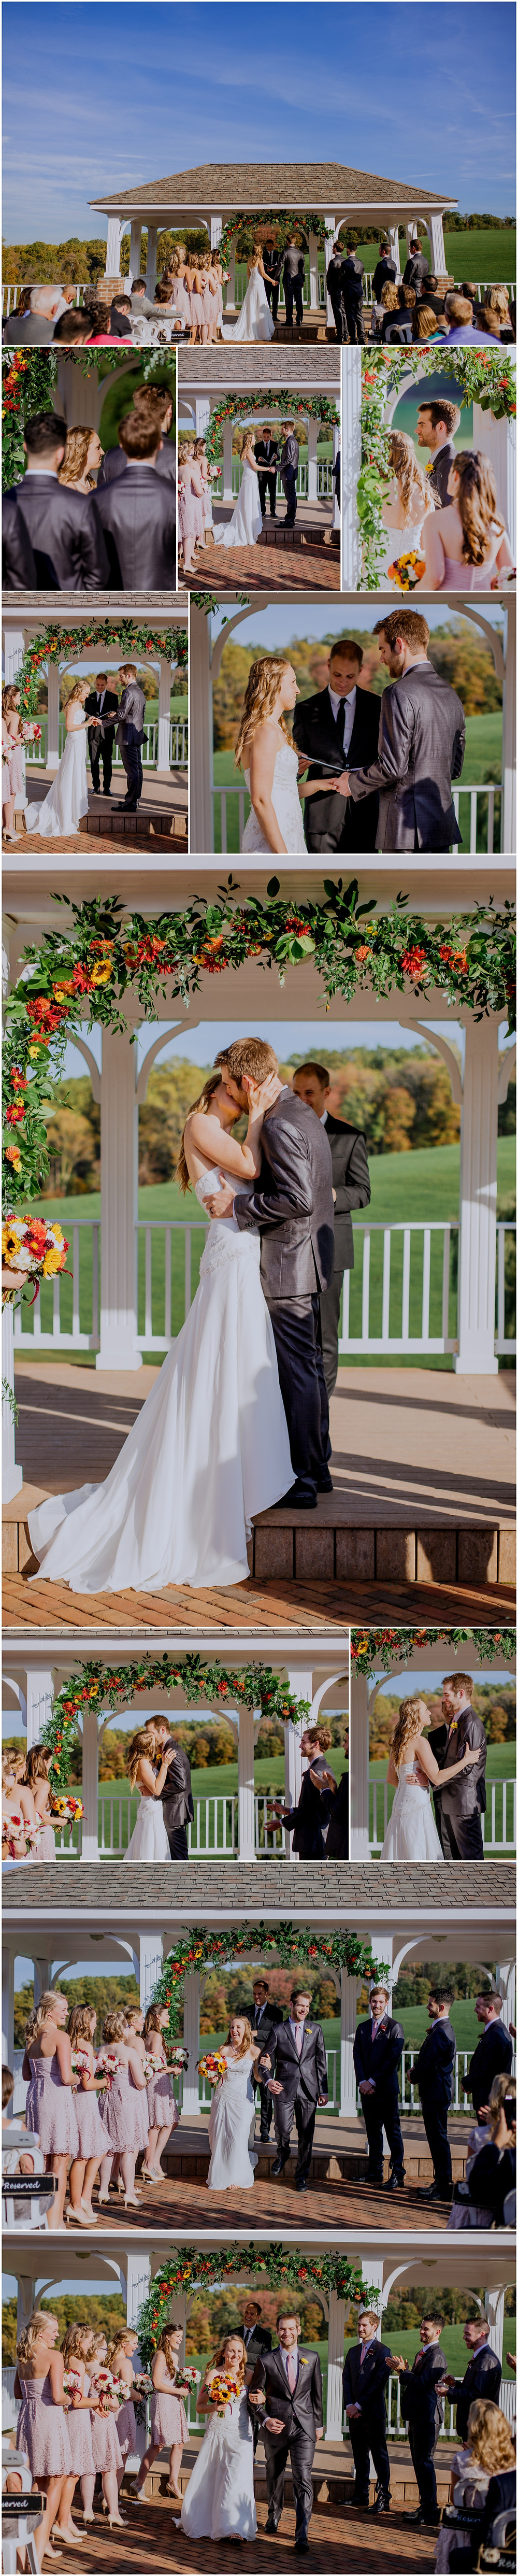 Morningside Inn Wedding Ceremony, Frederick Maryland